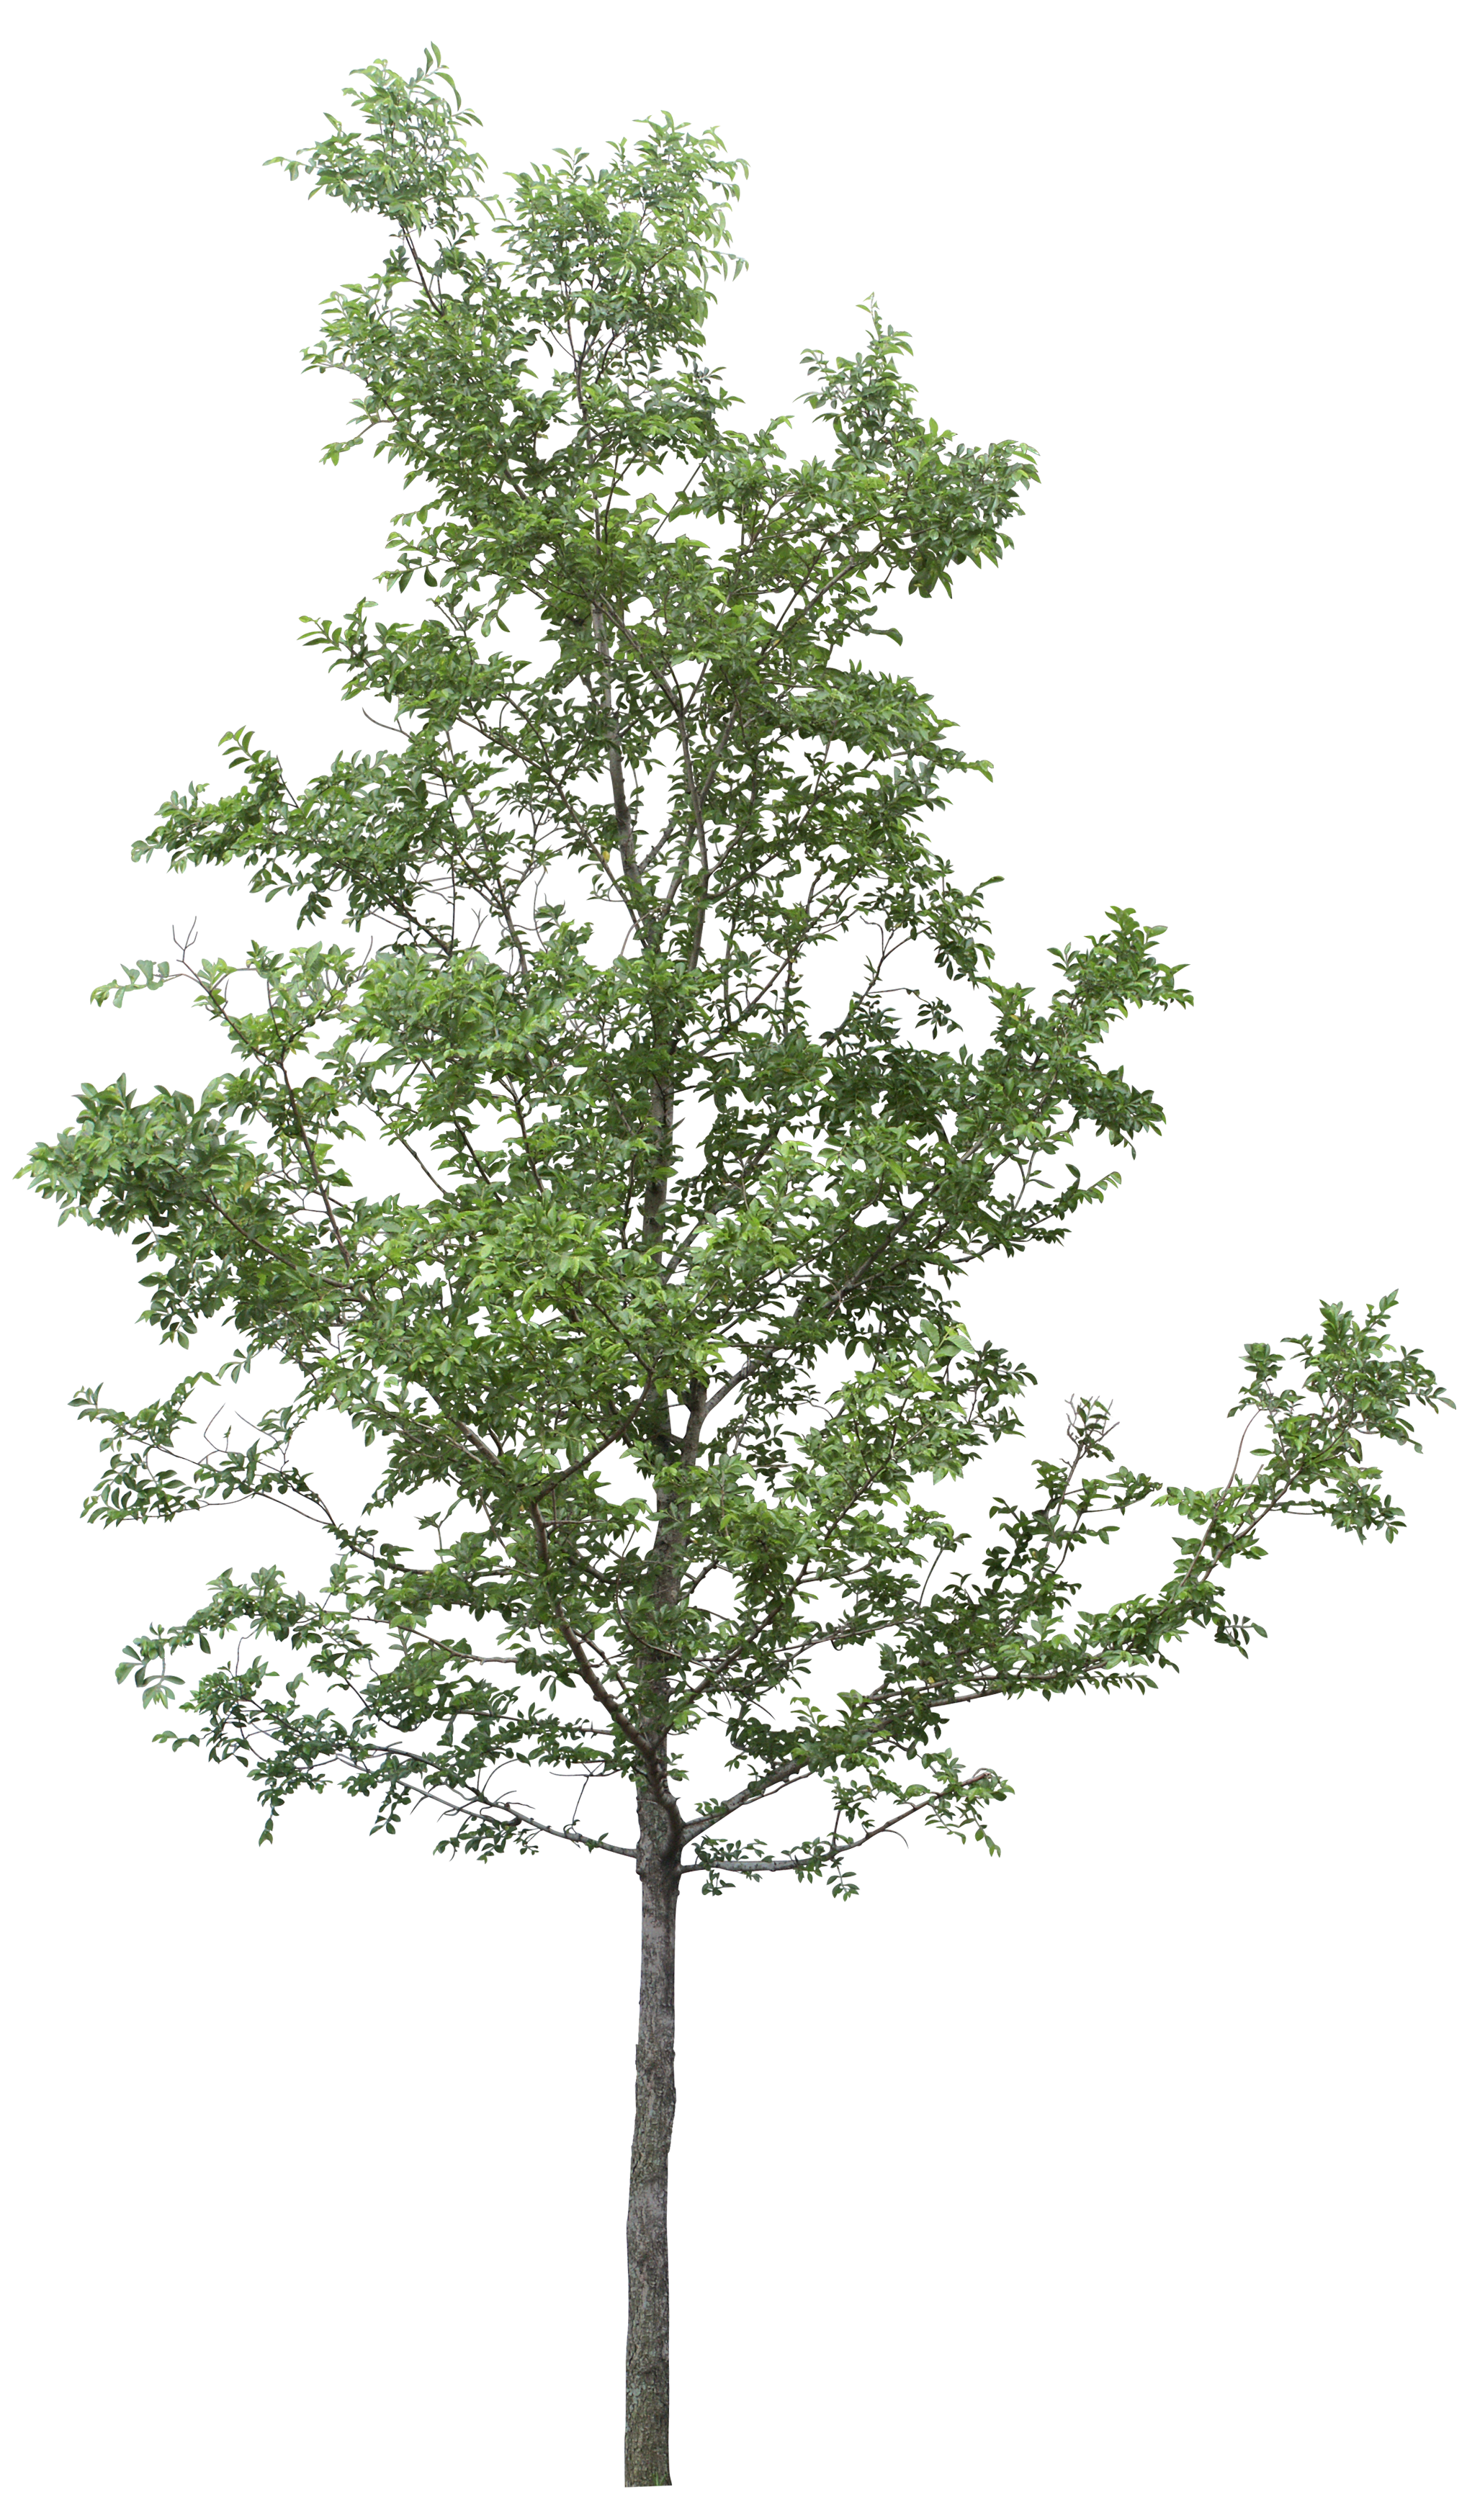 Dot tree dot tree clipart image library library Tree DOT - tree png image png download - 2037*3500 - Free ... image library library